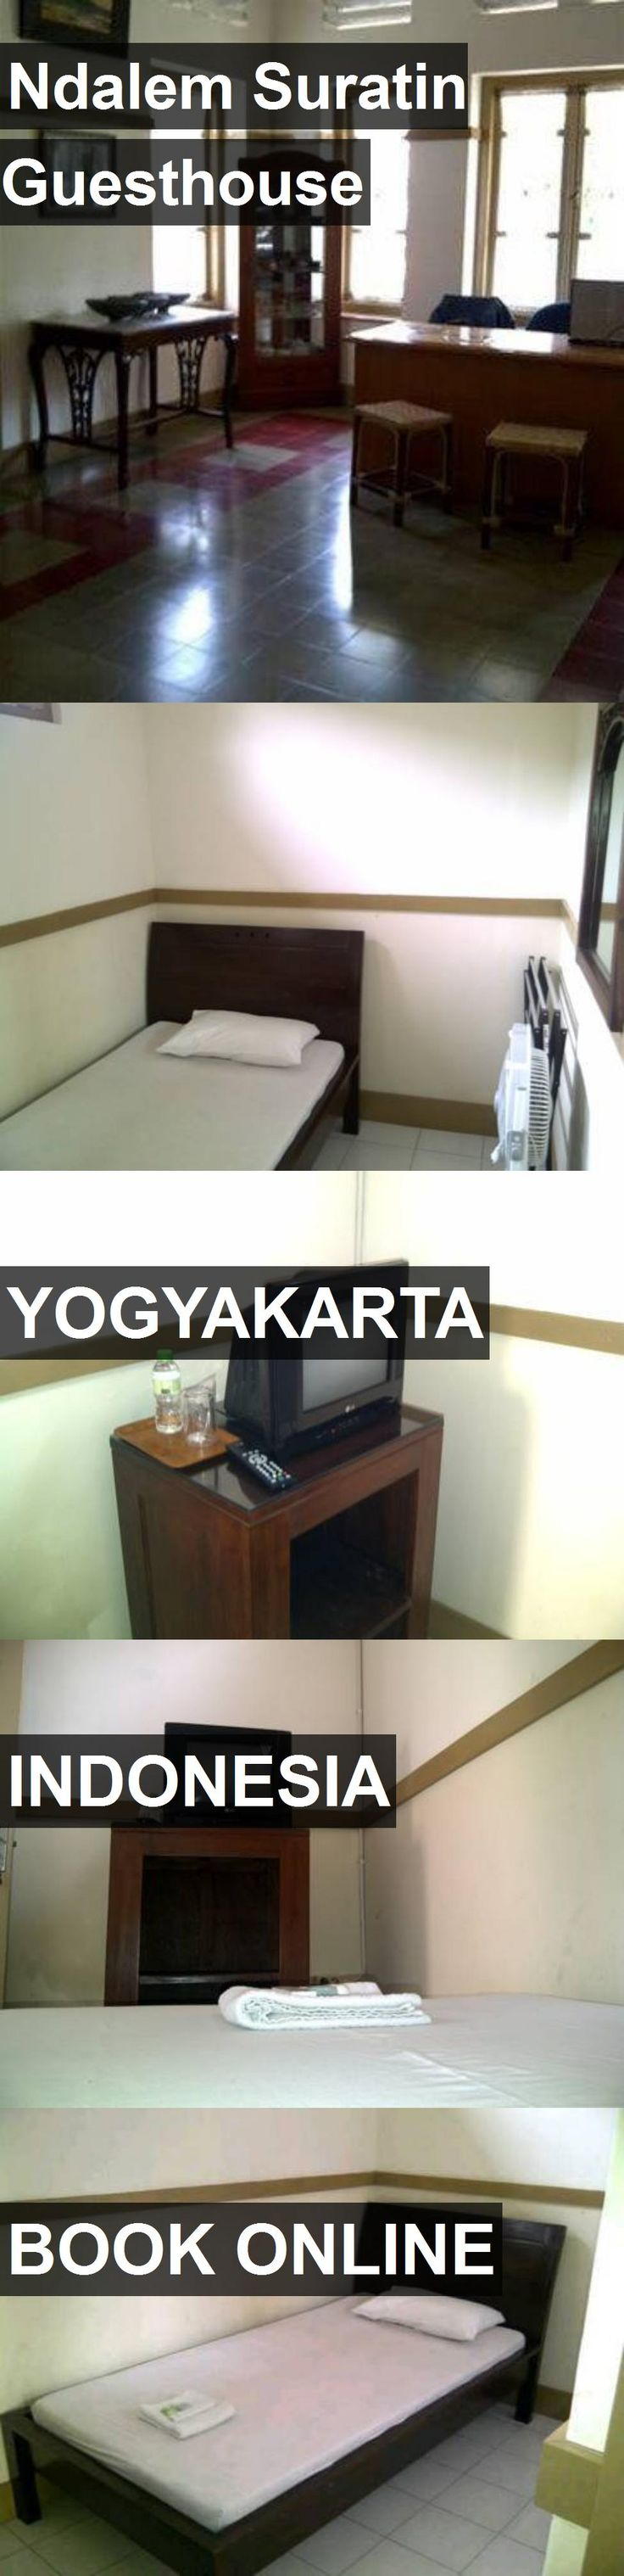 Hotel Ndalem Suratin Guesthouse in Yogyakarta, Indonesia. For more information, photos, reviews and best prices please follow the link. #Indonesia #Yogyakarta #travel #vacation #hotel